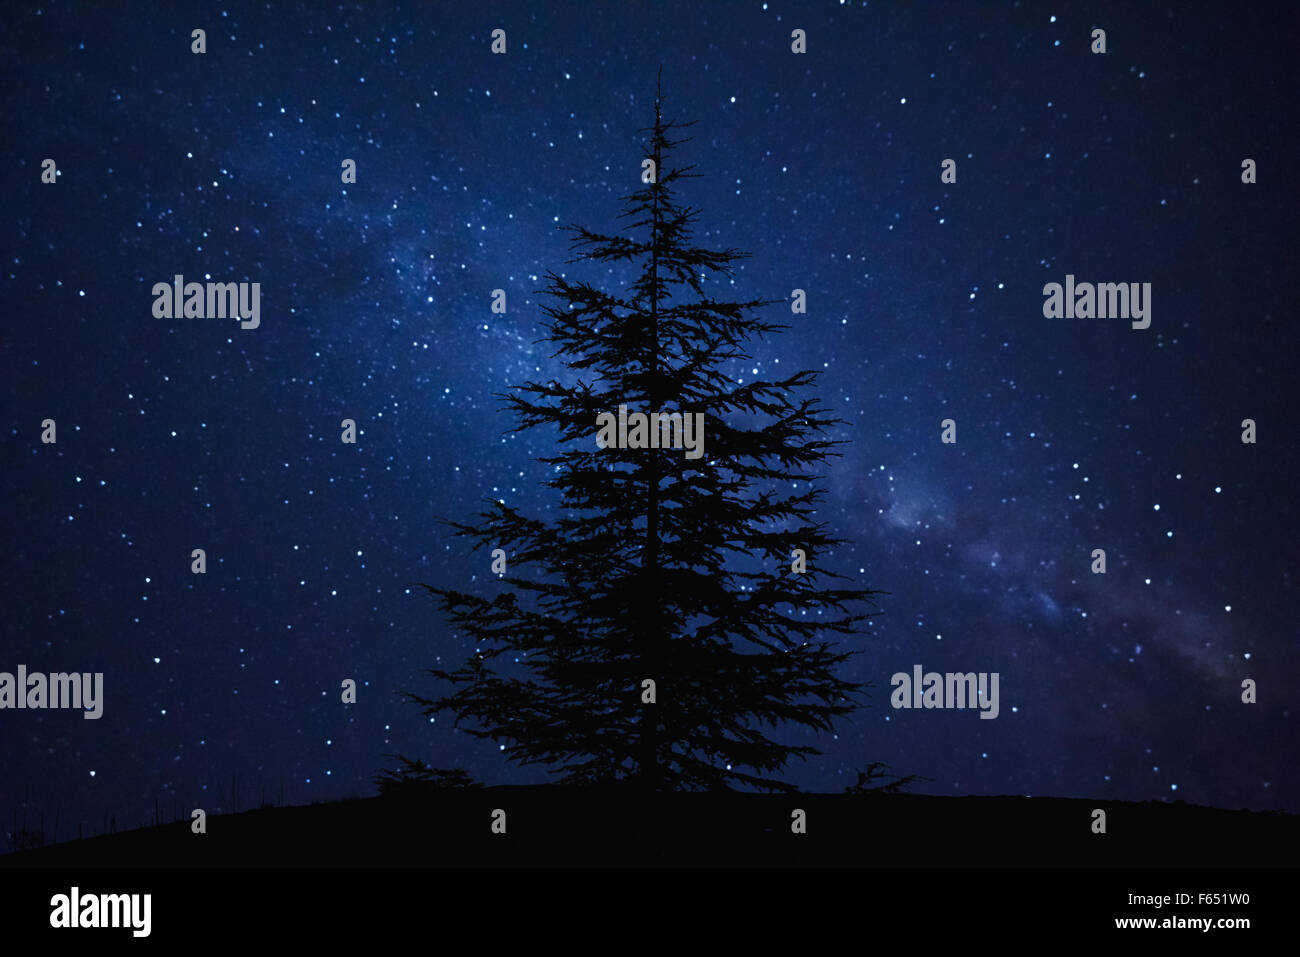 Silhouette of Pine Tree and Milky Way - Stock Image